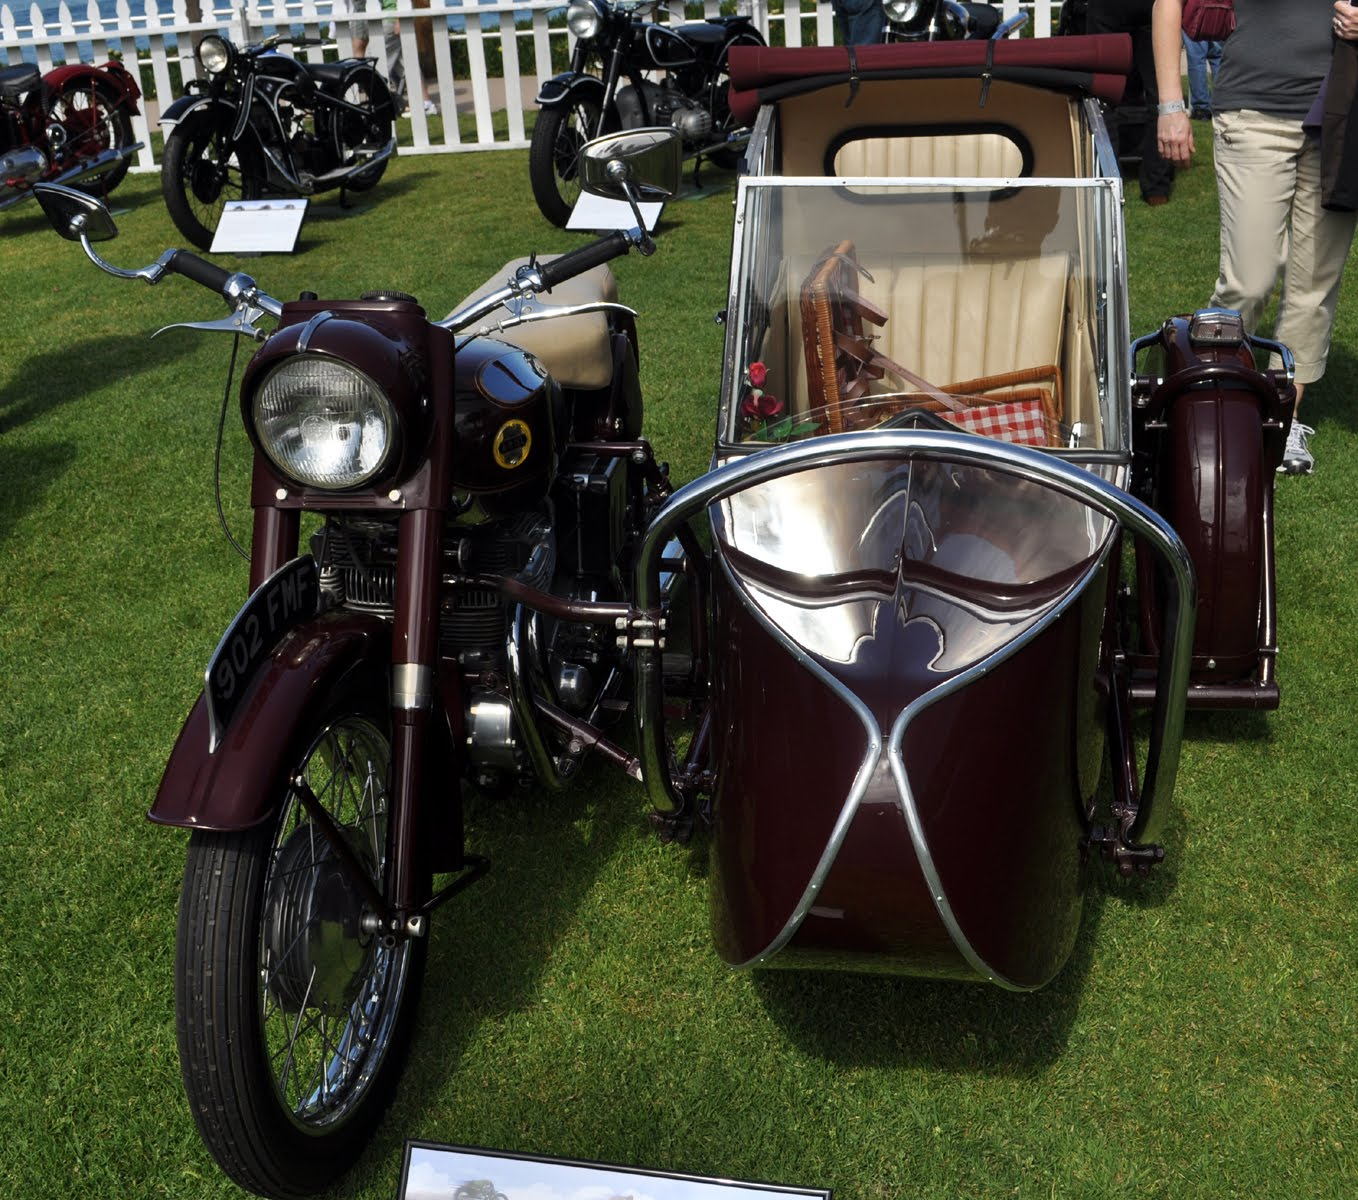 Vintage Motorcycles At The Lajolla Motor Car Classic Concours De Sepaket Alat Poles Polisher Pad Wol Wool Busa Spong Spon Adapter 7 Inc Pcs Elegance